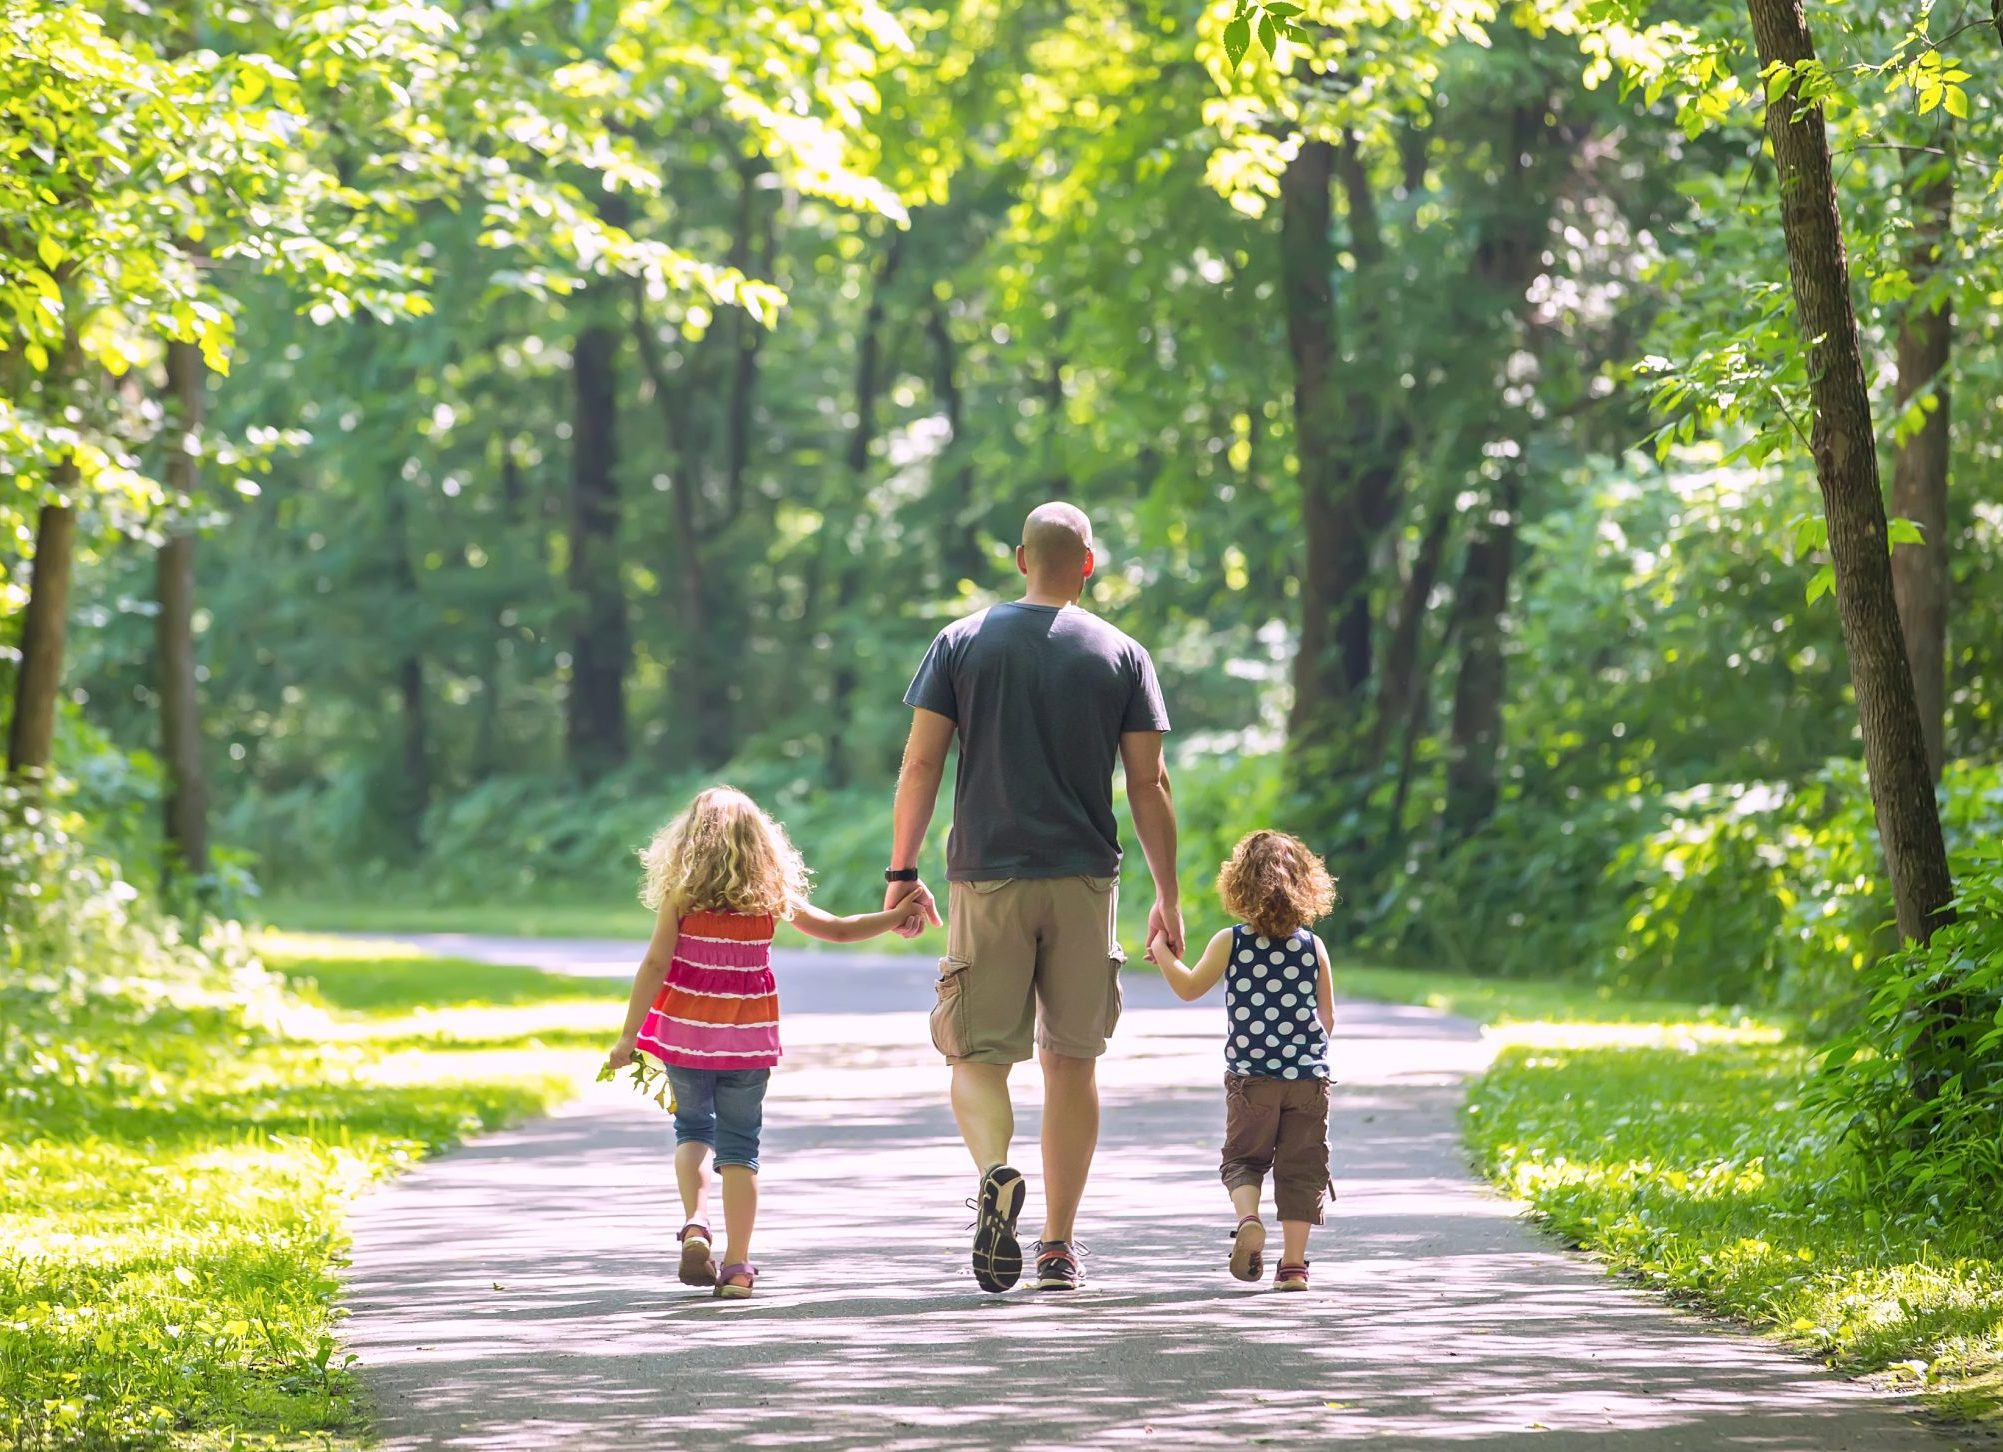 Rear view of a father and his two young daughters going for a walk on a paved trail through the wooded park. The three are walking in a row holding hands with each other. Sunlight is coming through the open spaces, so the trail is partially shaded and partially in sunlight.